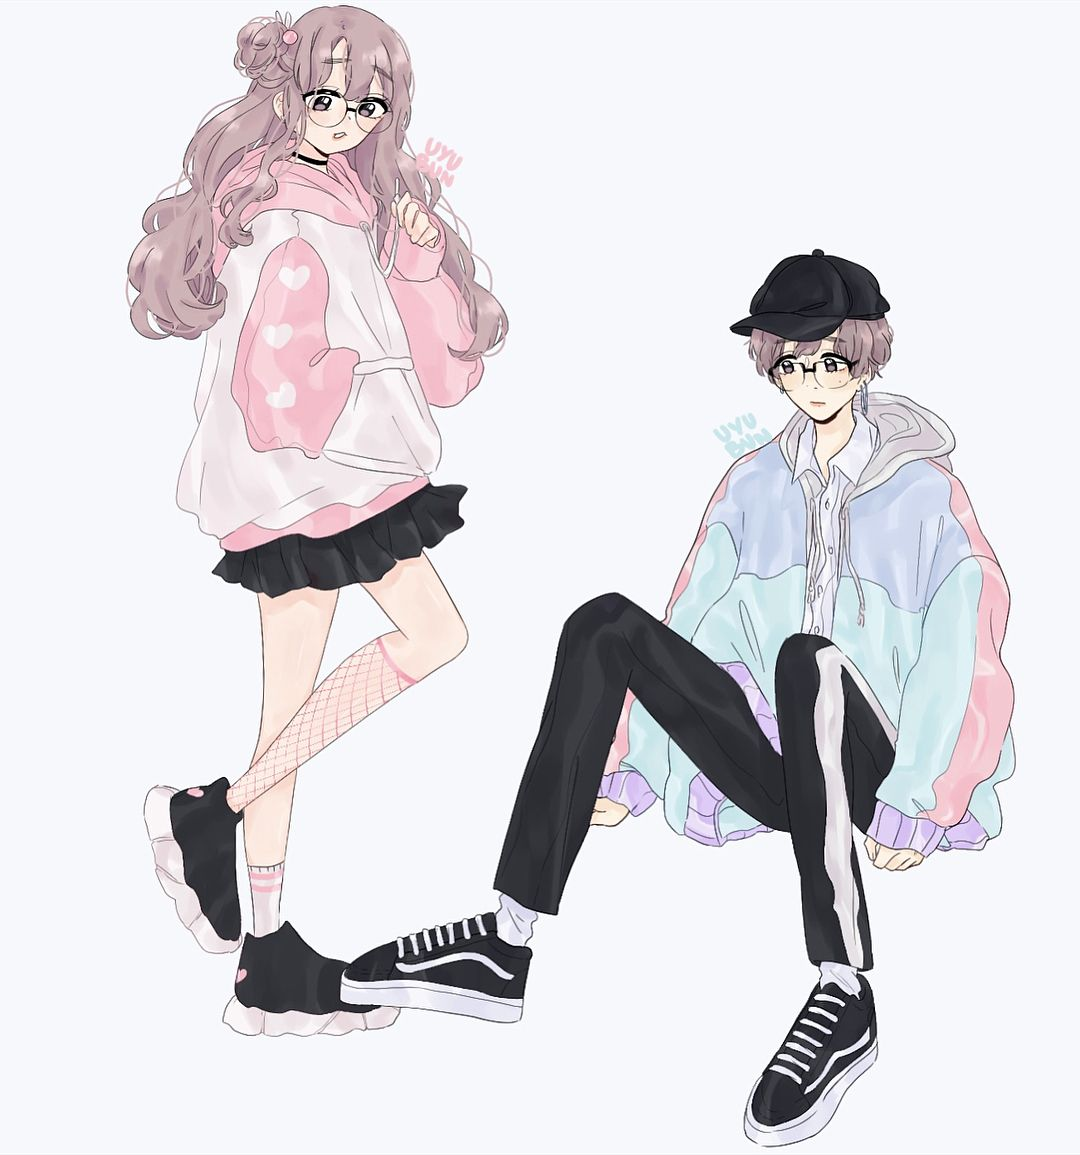 Twin Tae If I Made A Webtoon About Them And Guk And His Sister Would You Read It Fan Art By Uyubun Boy And Girl Drawing Anime Best Friends Art